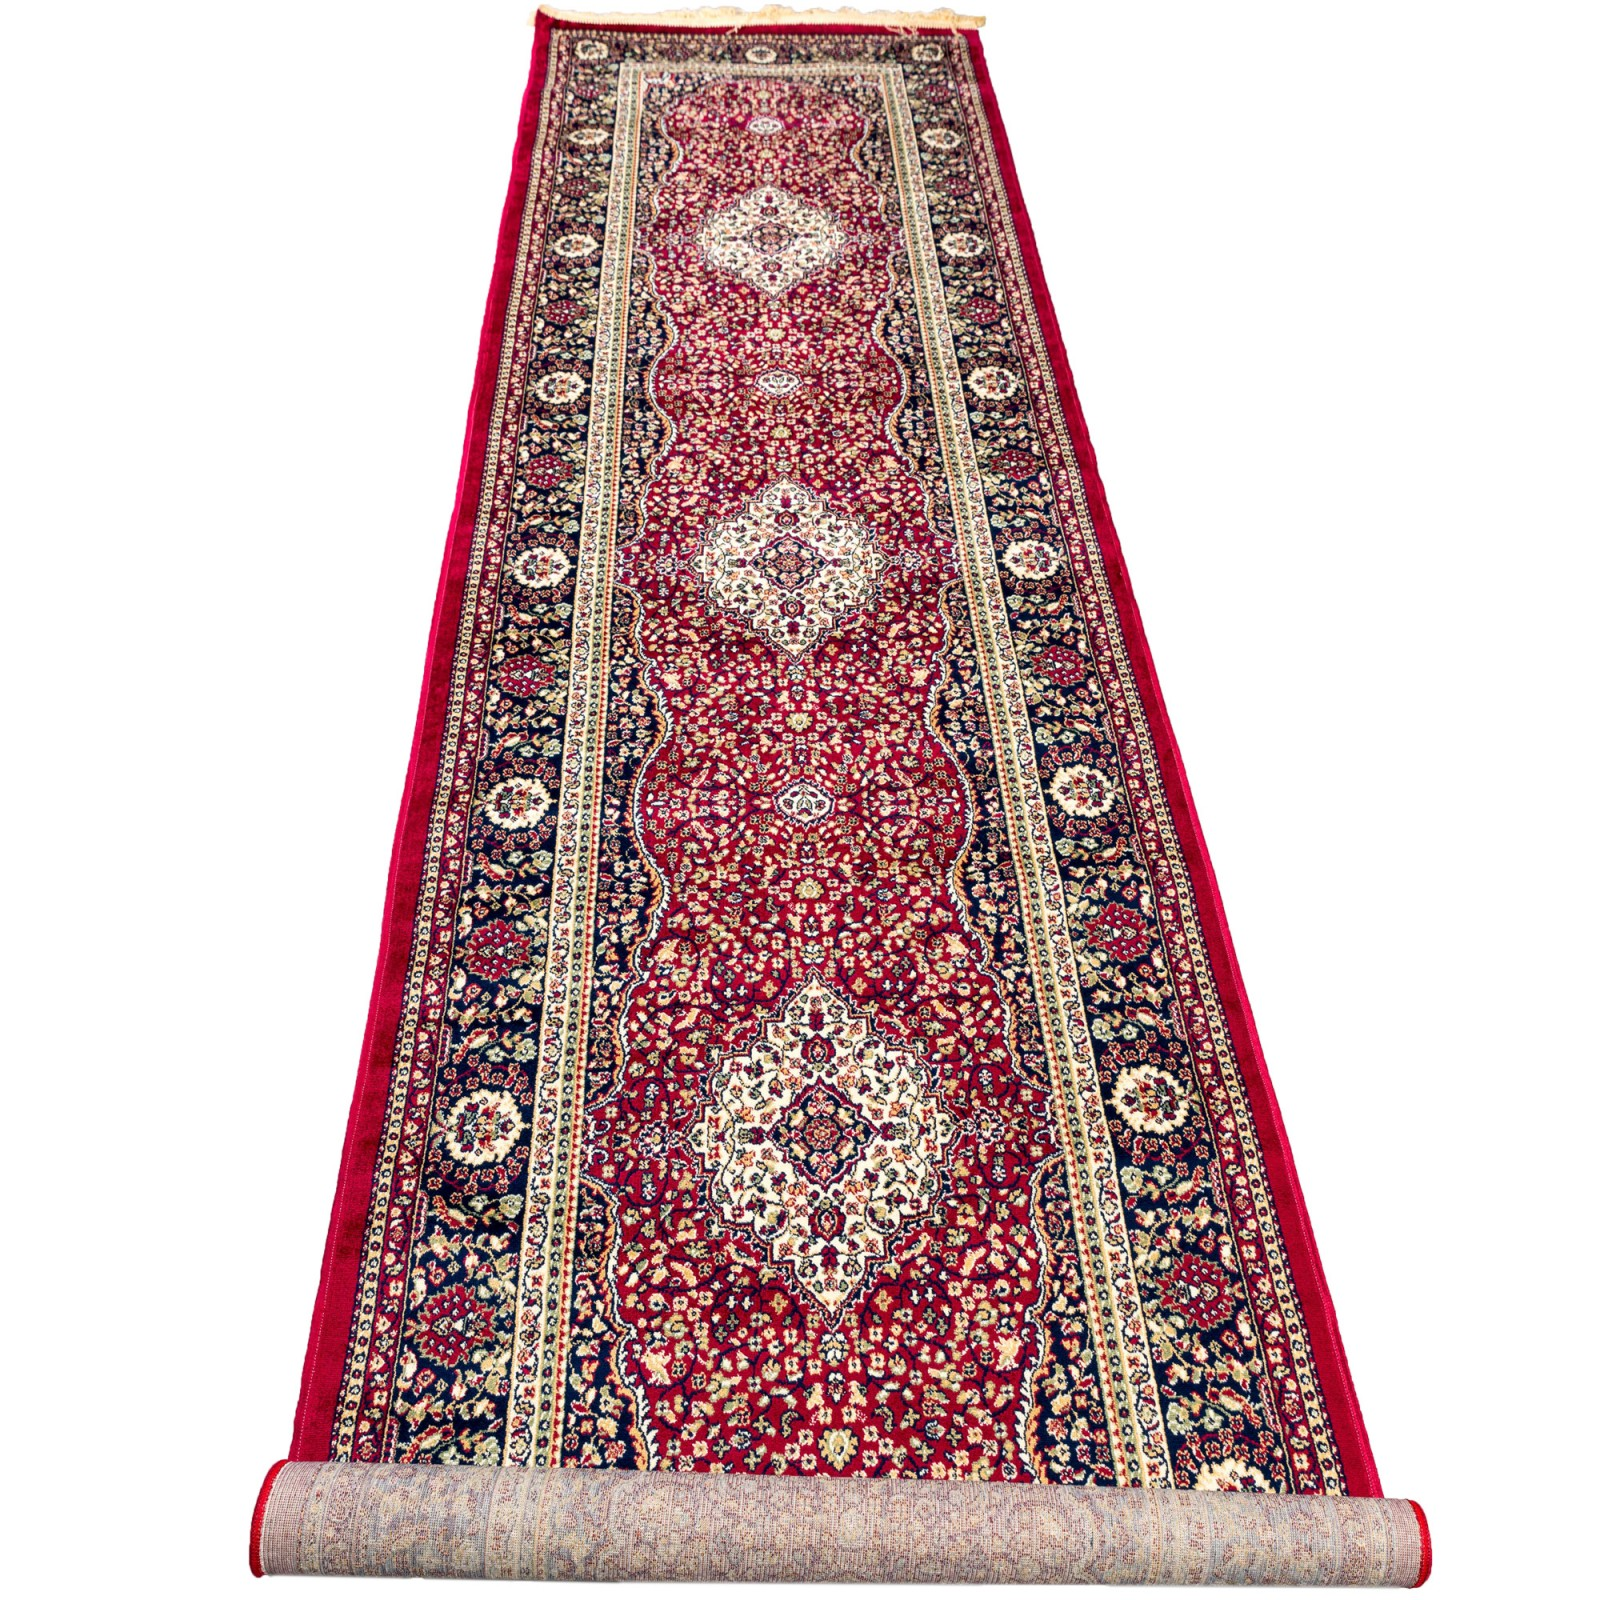 Tapis Soyeux -77808 -0,80X400 -Red/Tradition